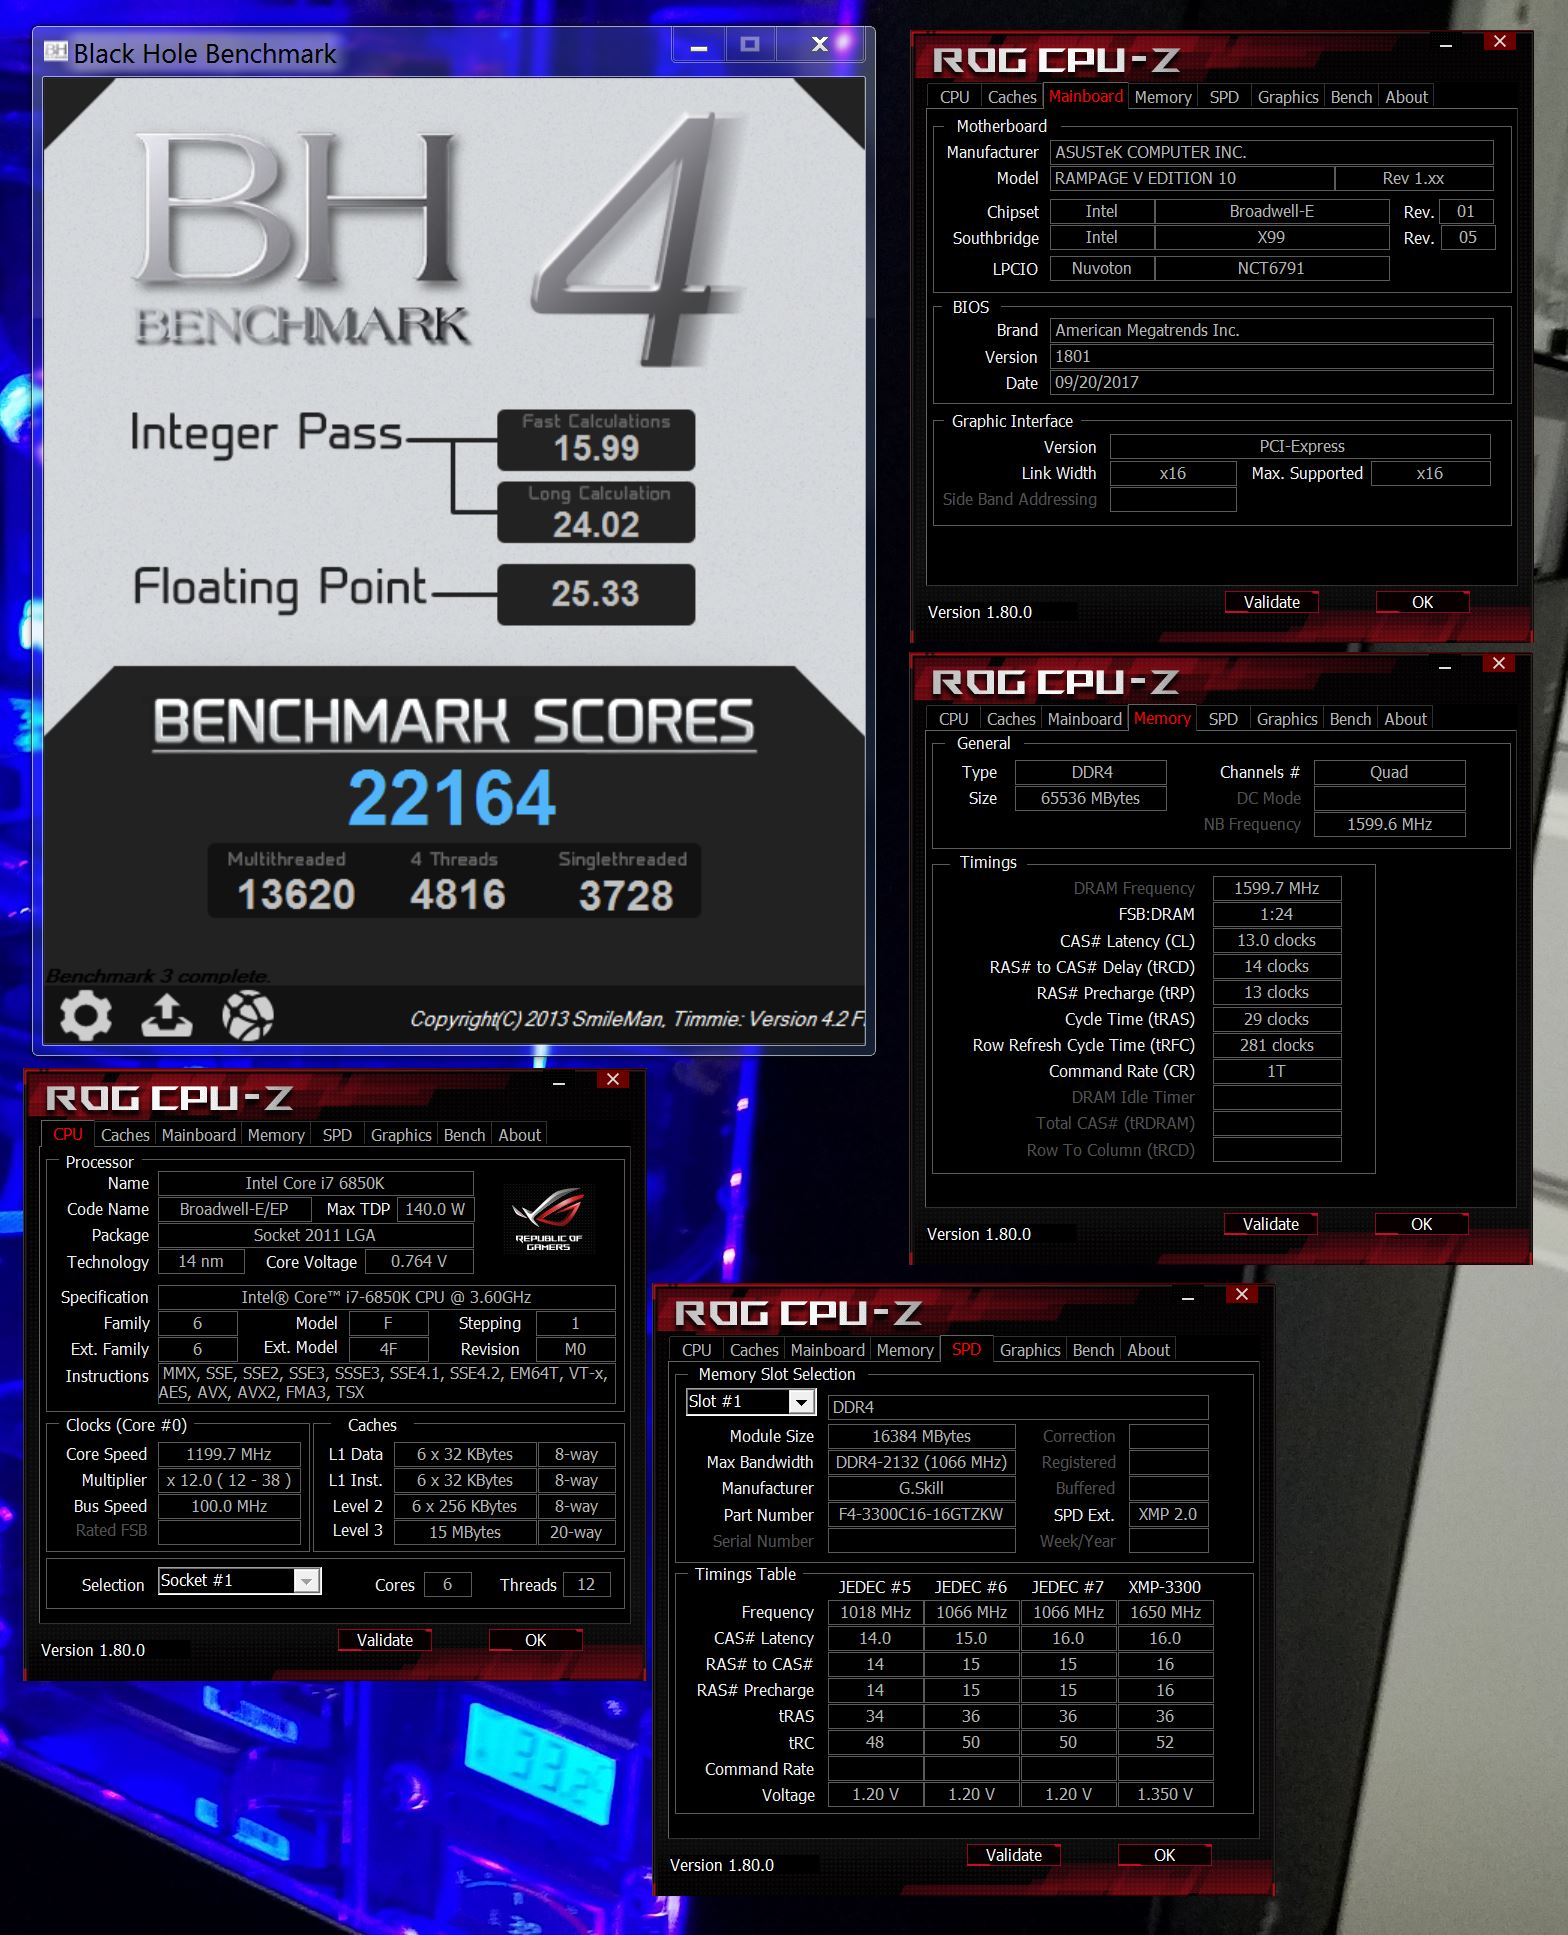 JMTH`s Black Hole Benchmark score: 22164 marks with a Core i7 6850K